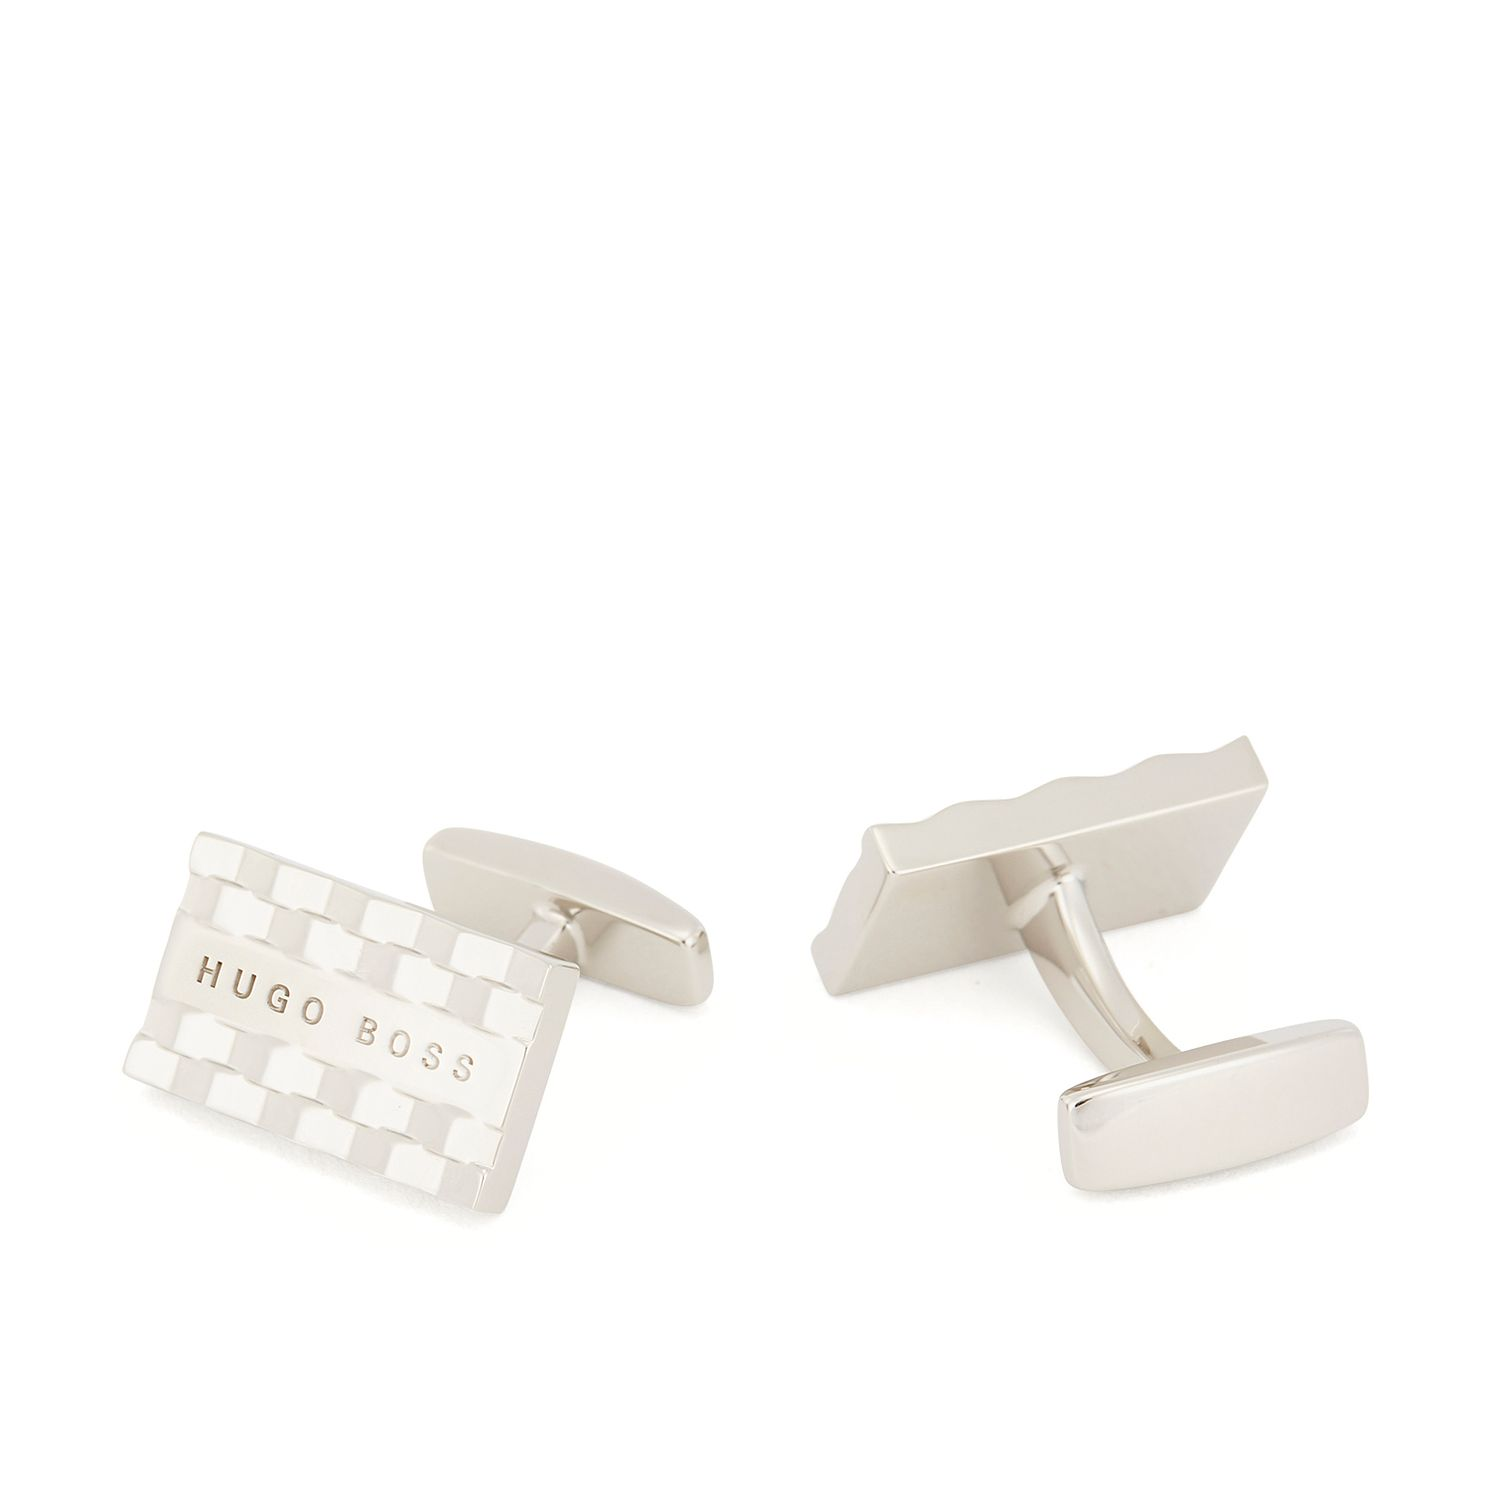 BOSS Nate Men's Silver Tone Rectangular Cufflinks - Product number 3627446